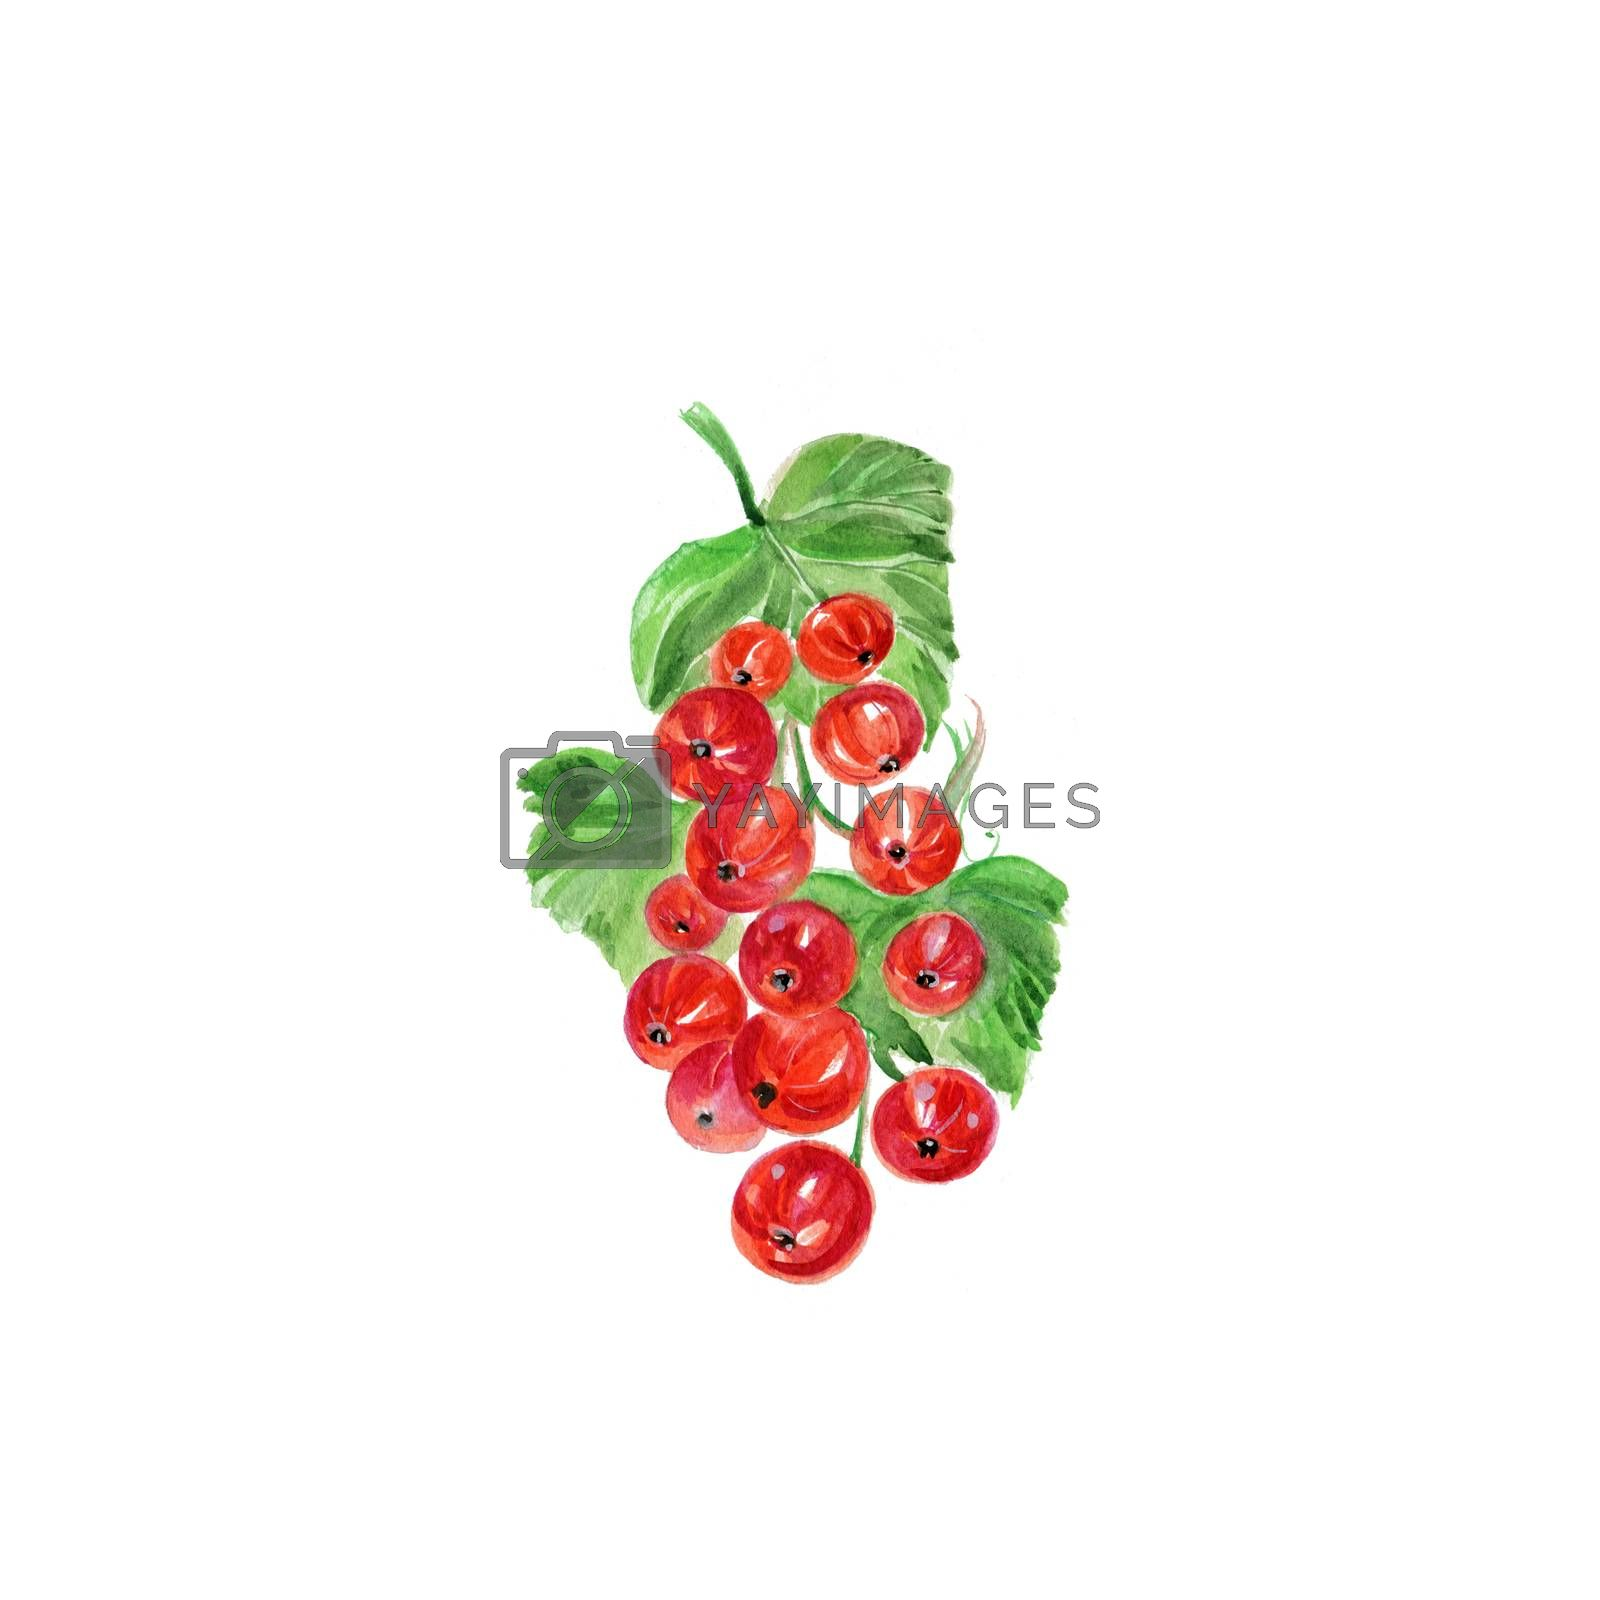 Watercolor Red Currant. Hand Drawn Illustration Organic Food Vegetarian Ingredient